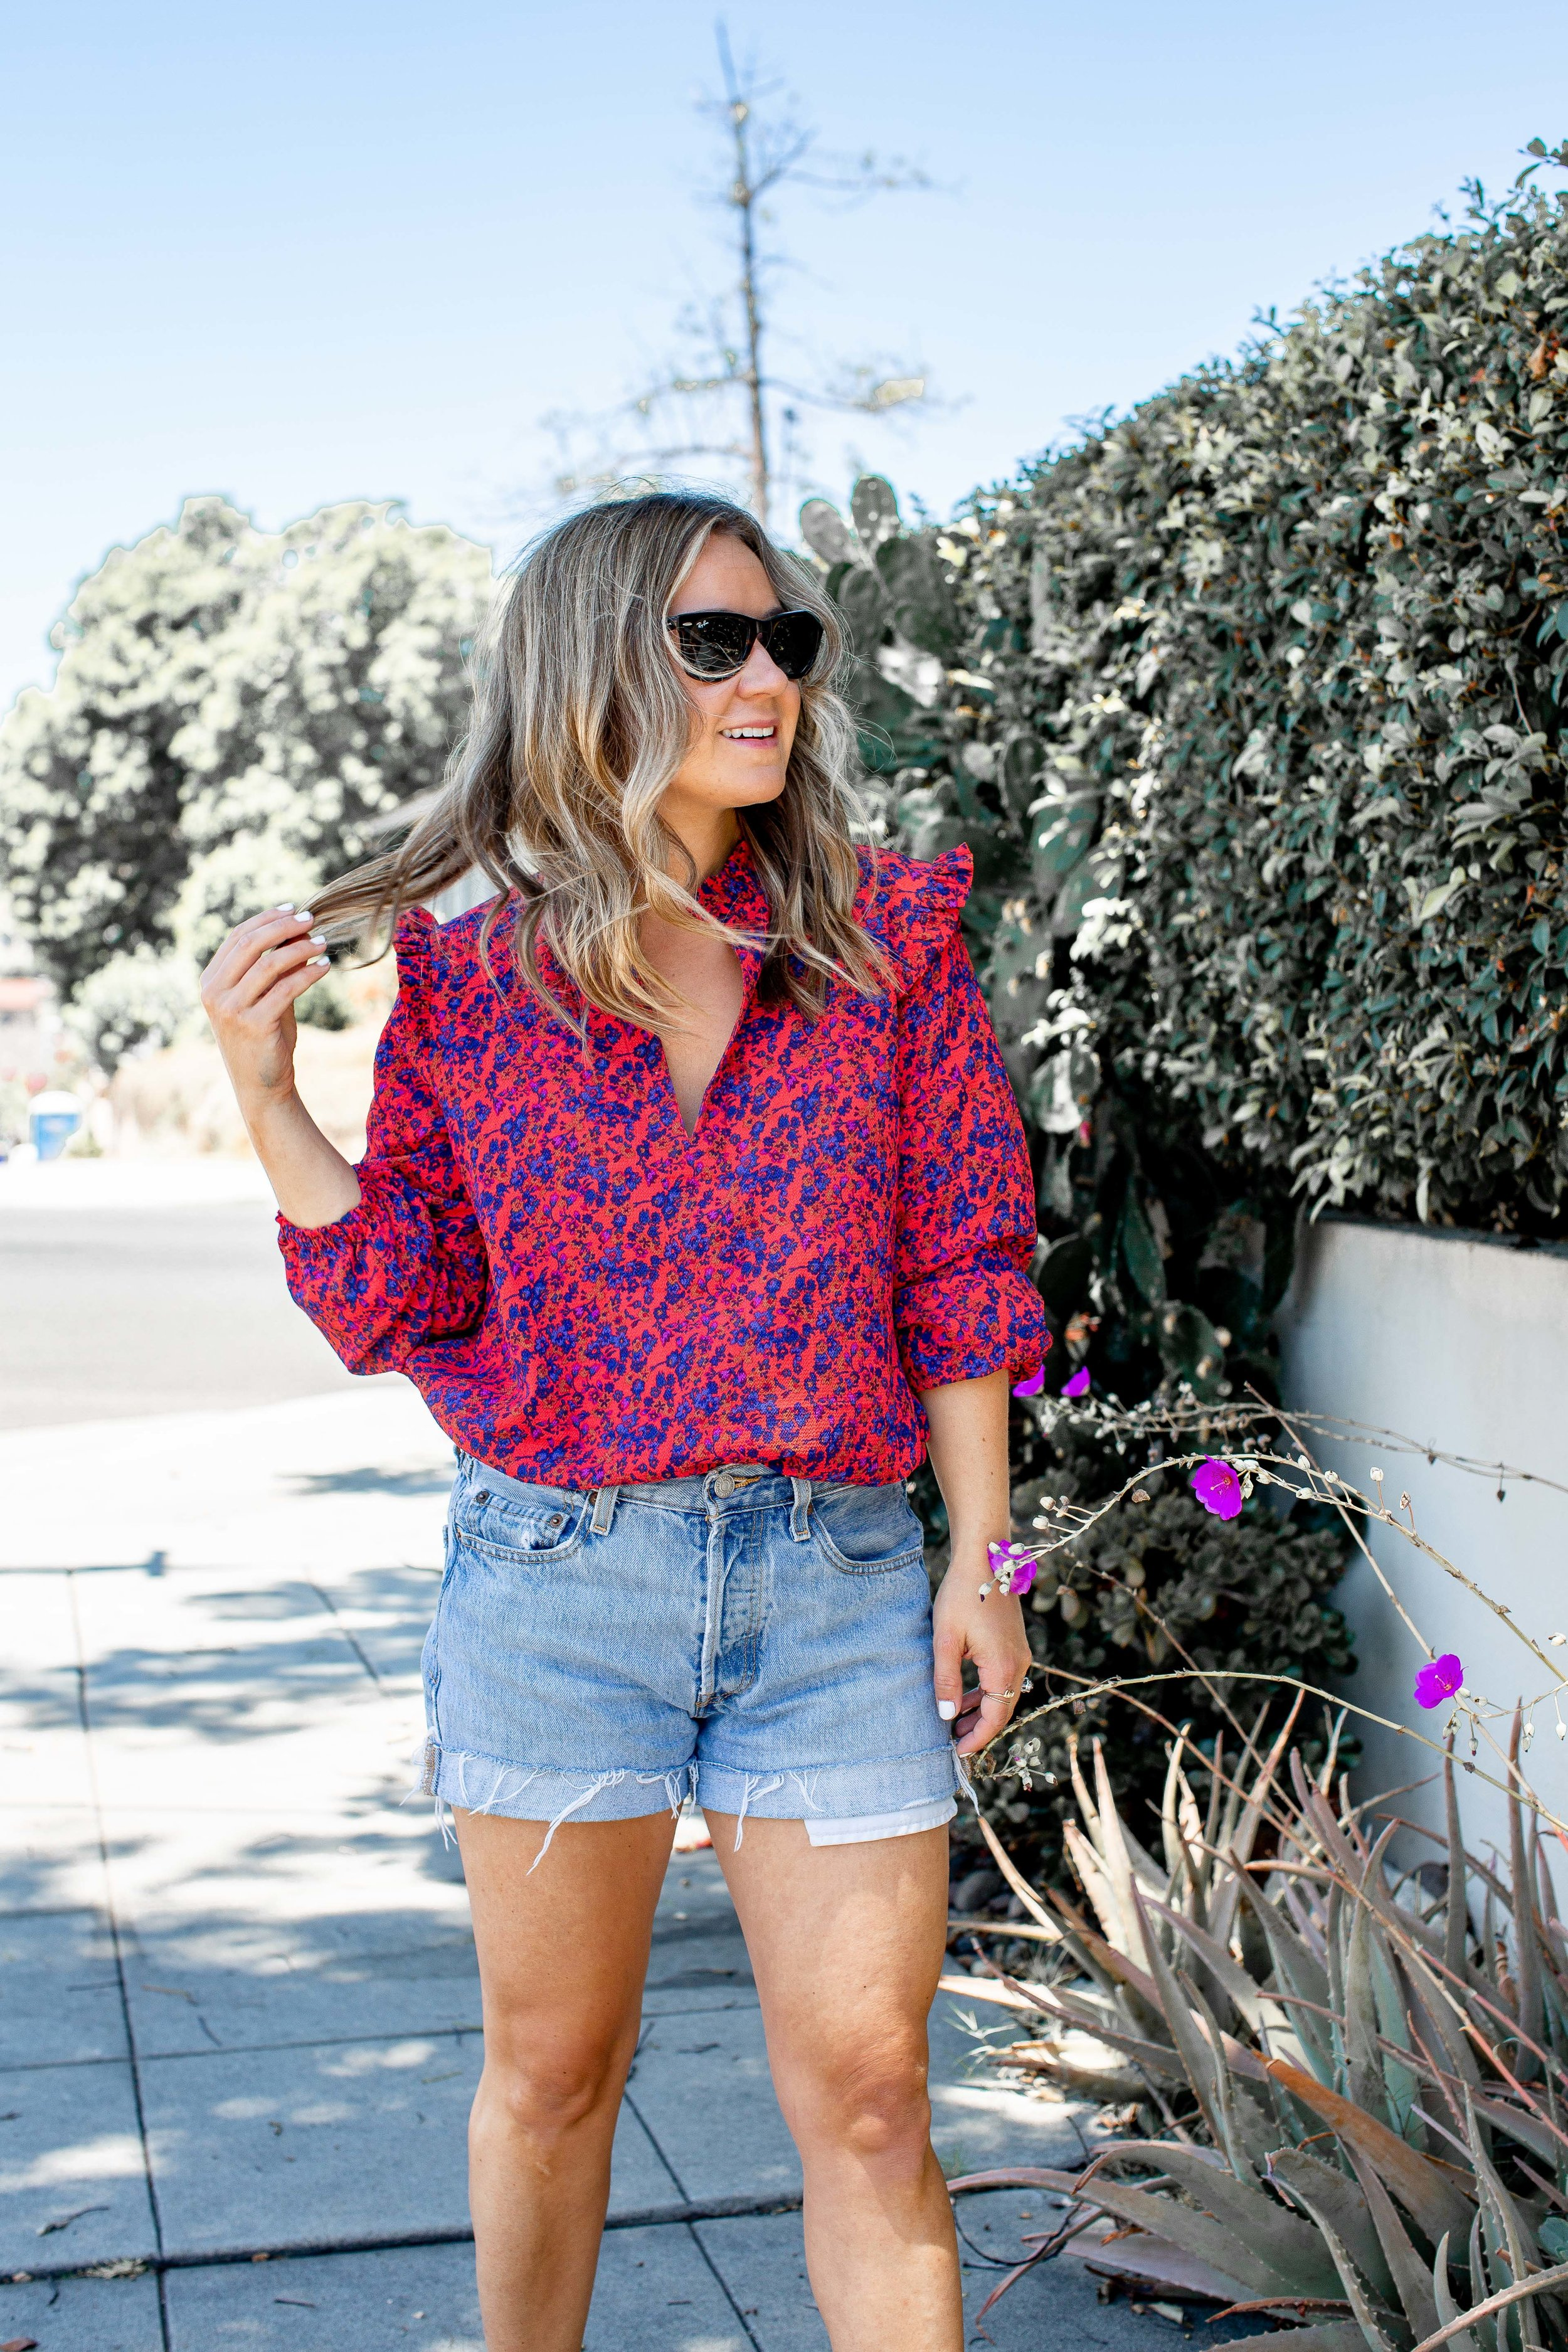 fizz-fade-red-floral-blouse-2.jpg